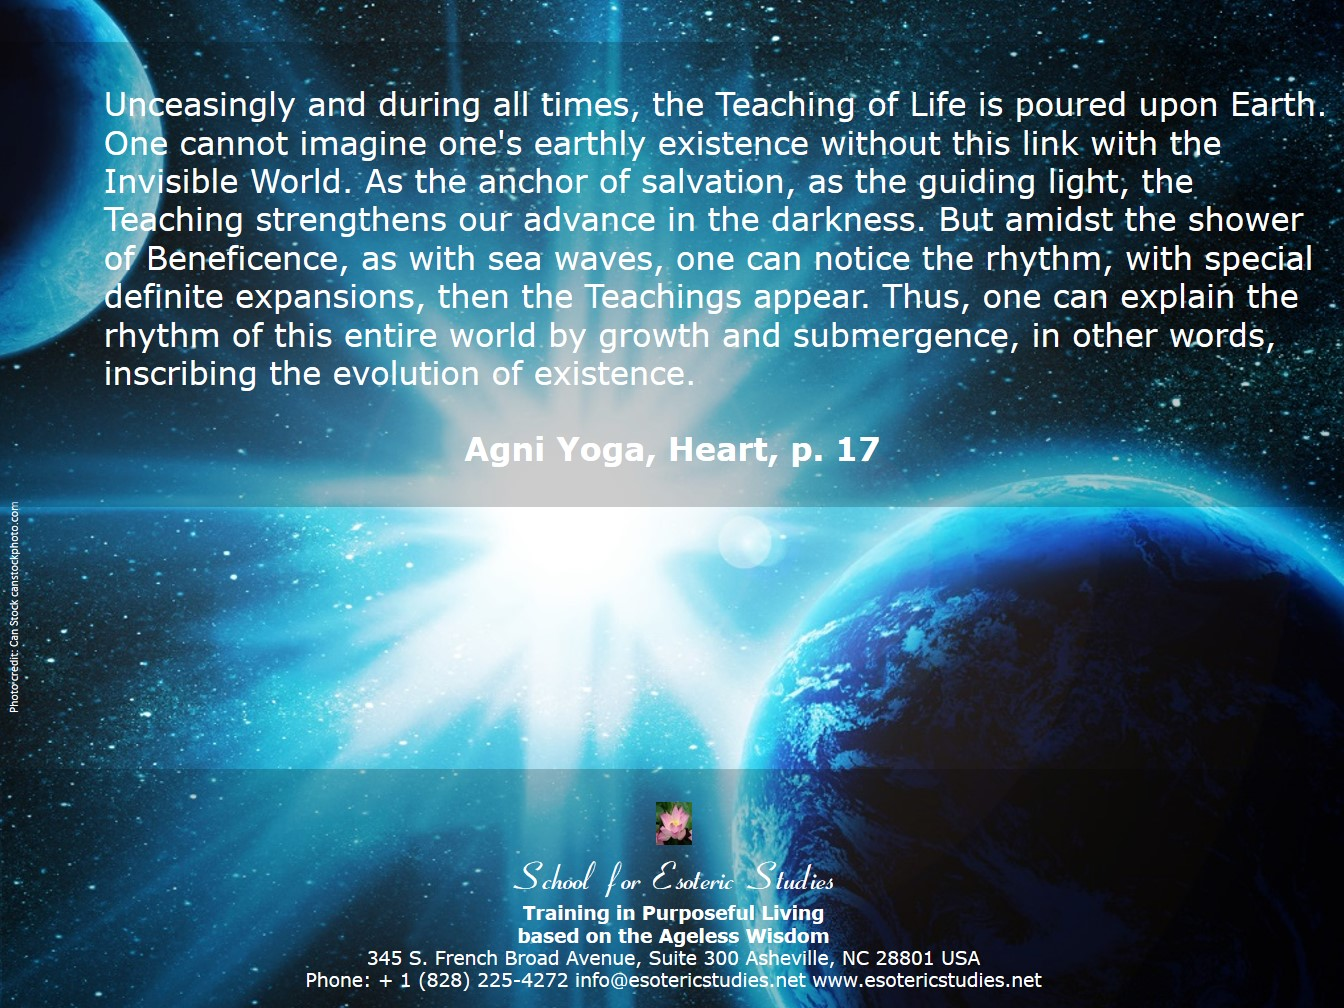 Quote about the Ageless Wisdom Teachings